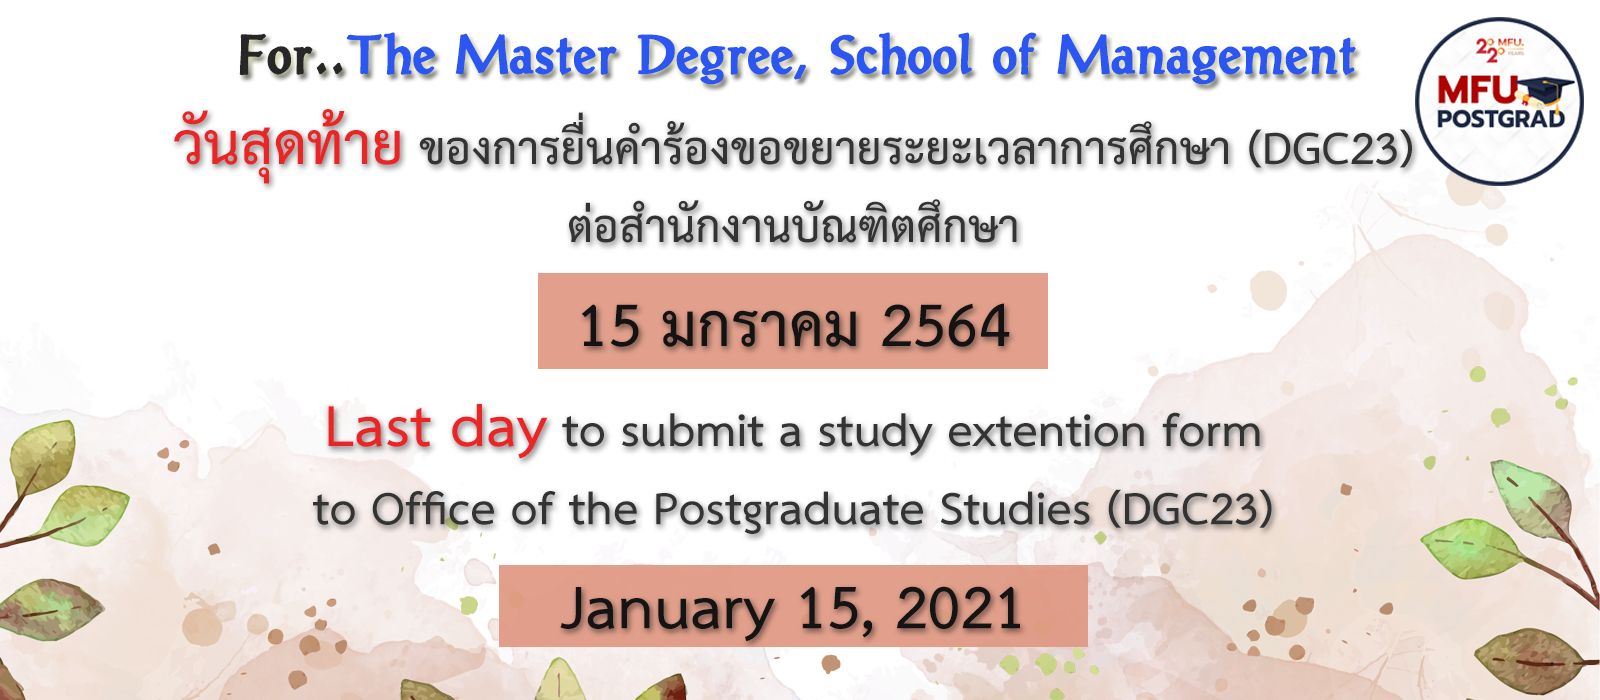 Last day to submit a study extention form (DGC23) 1/2020  (For..The Master Degree, School of management)